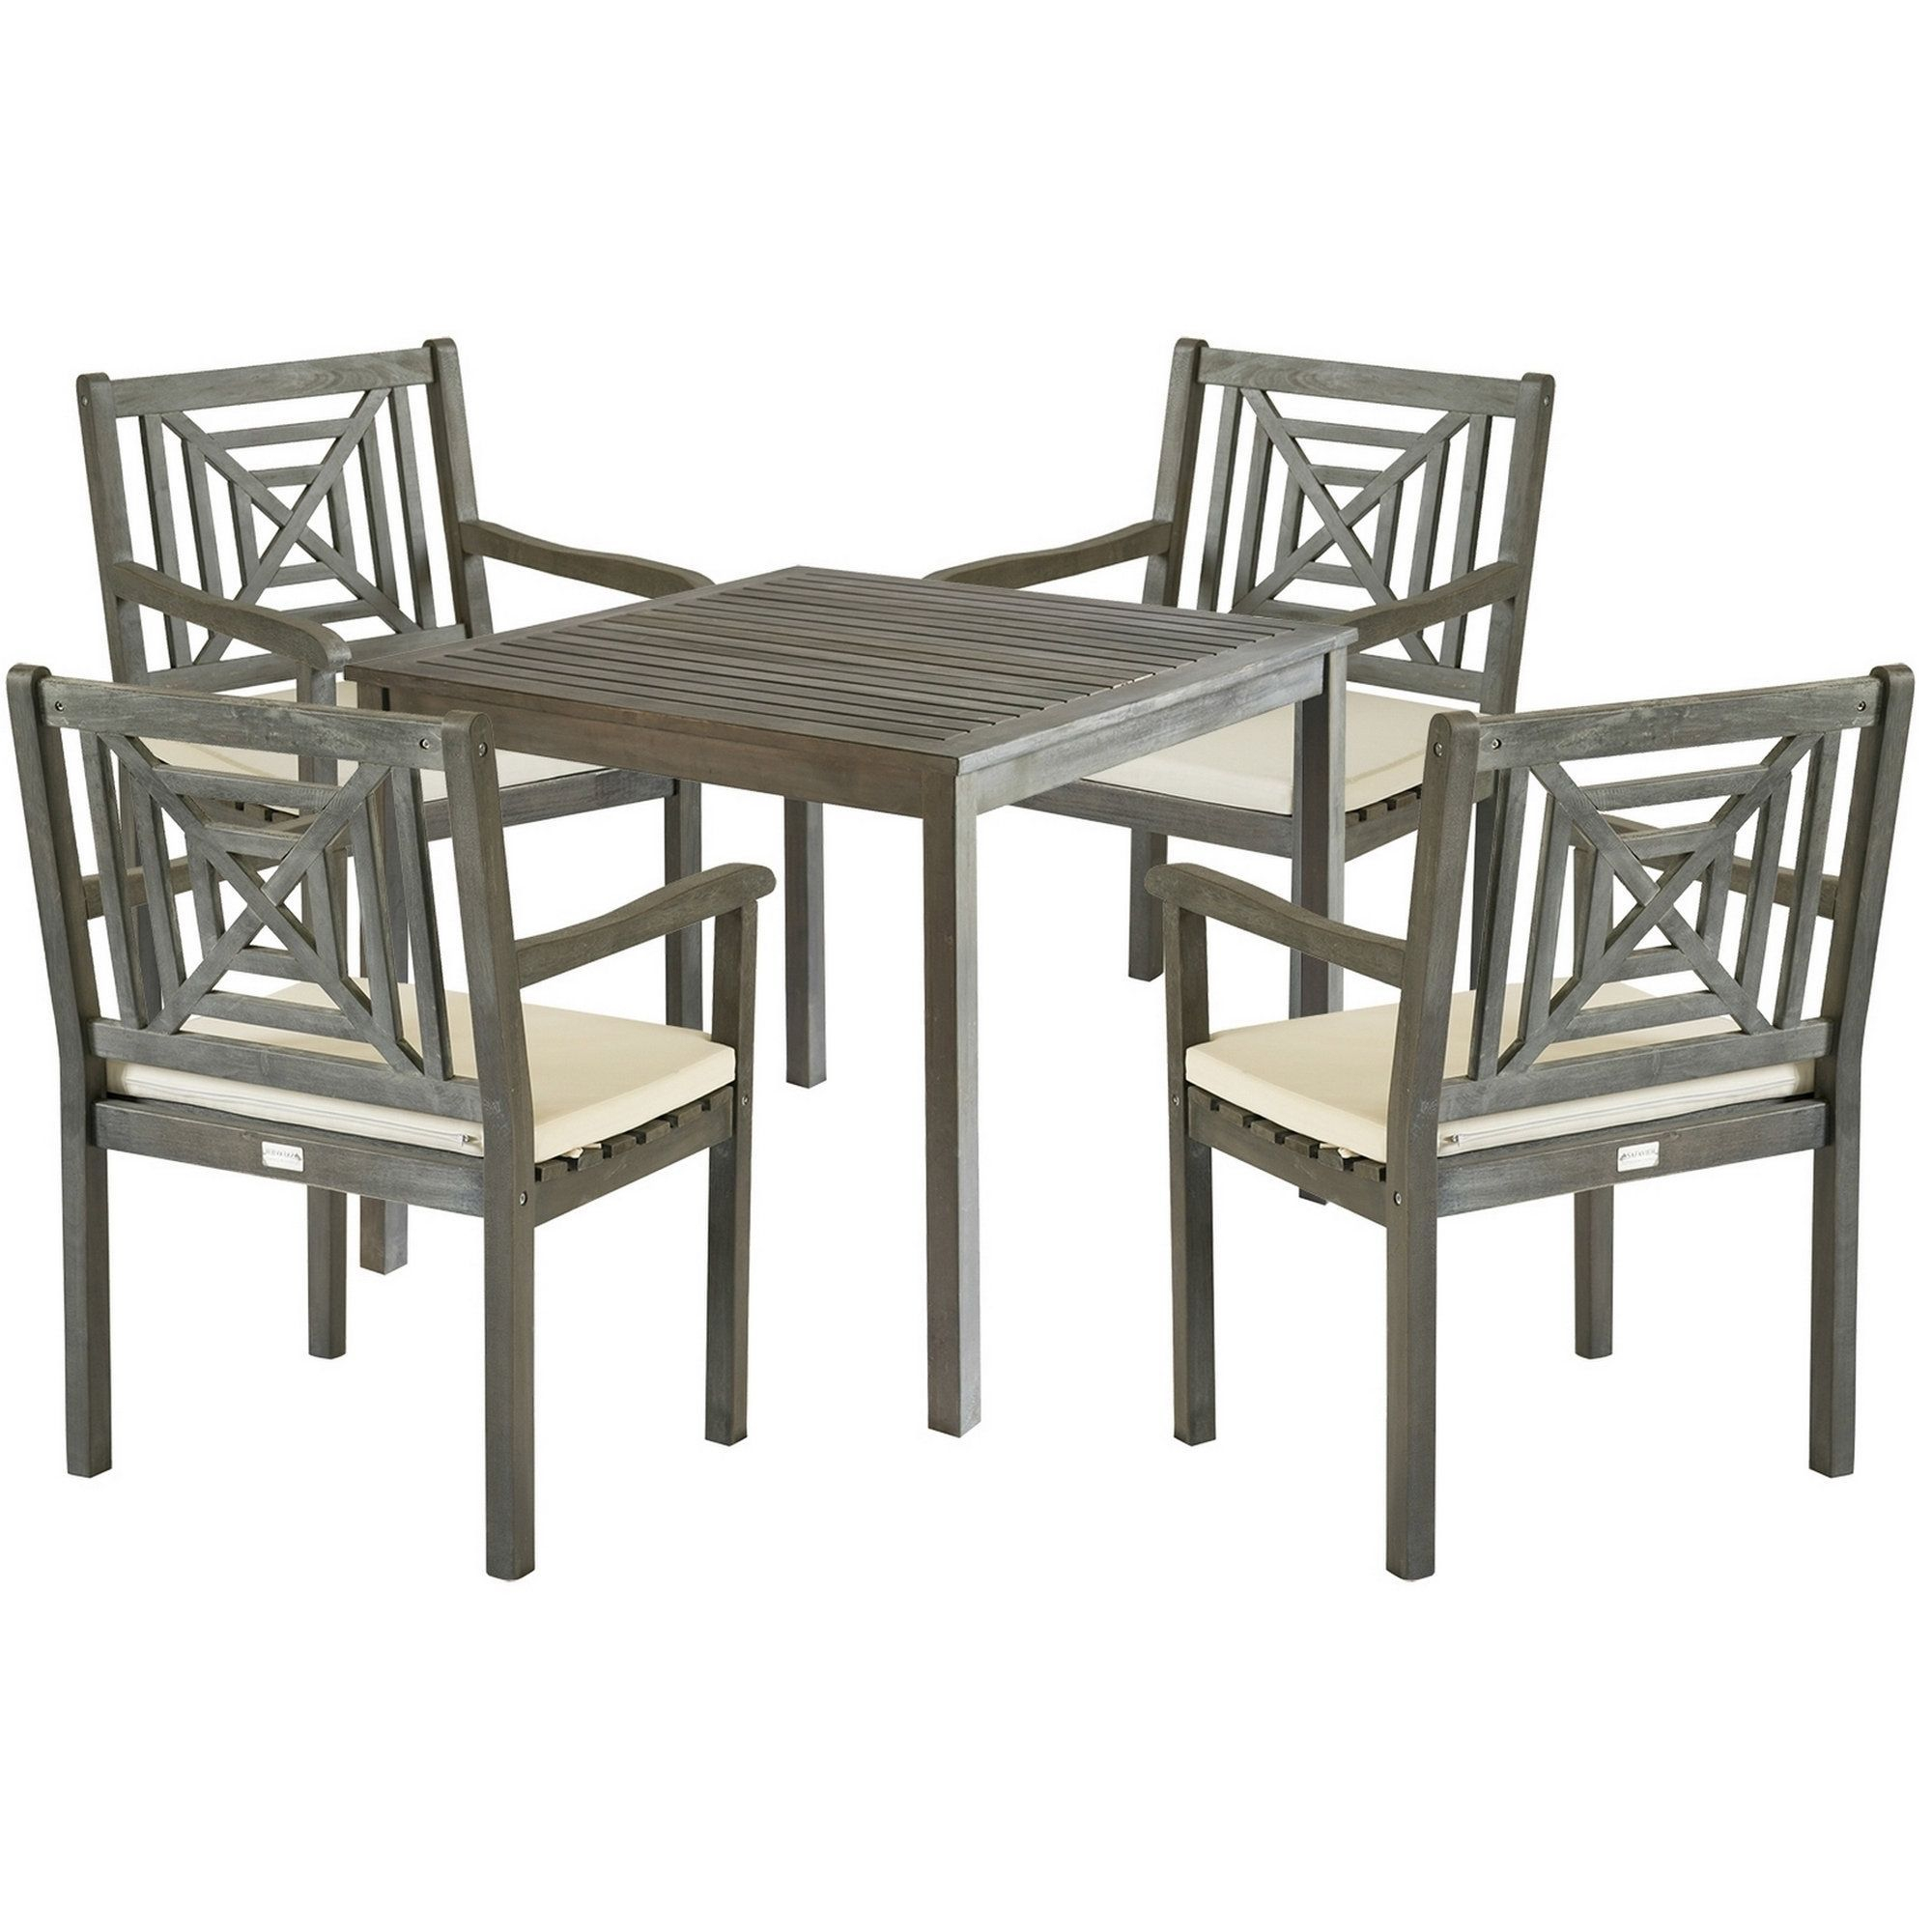 Safavieh Outdoor Living Del Mar Ash Grey Acacia Wood 5 Piece Beige Intended For Latest Delmar 5 Piece Dining Sets (View 11 of 20)